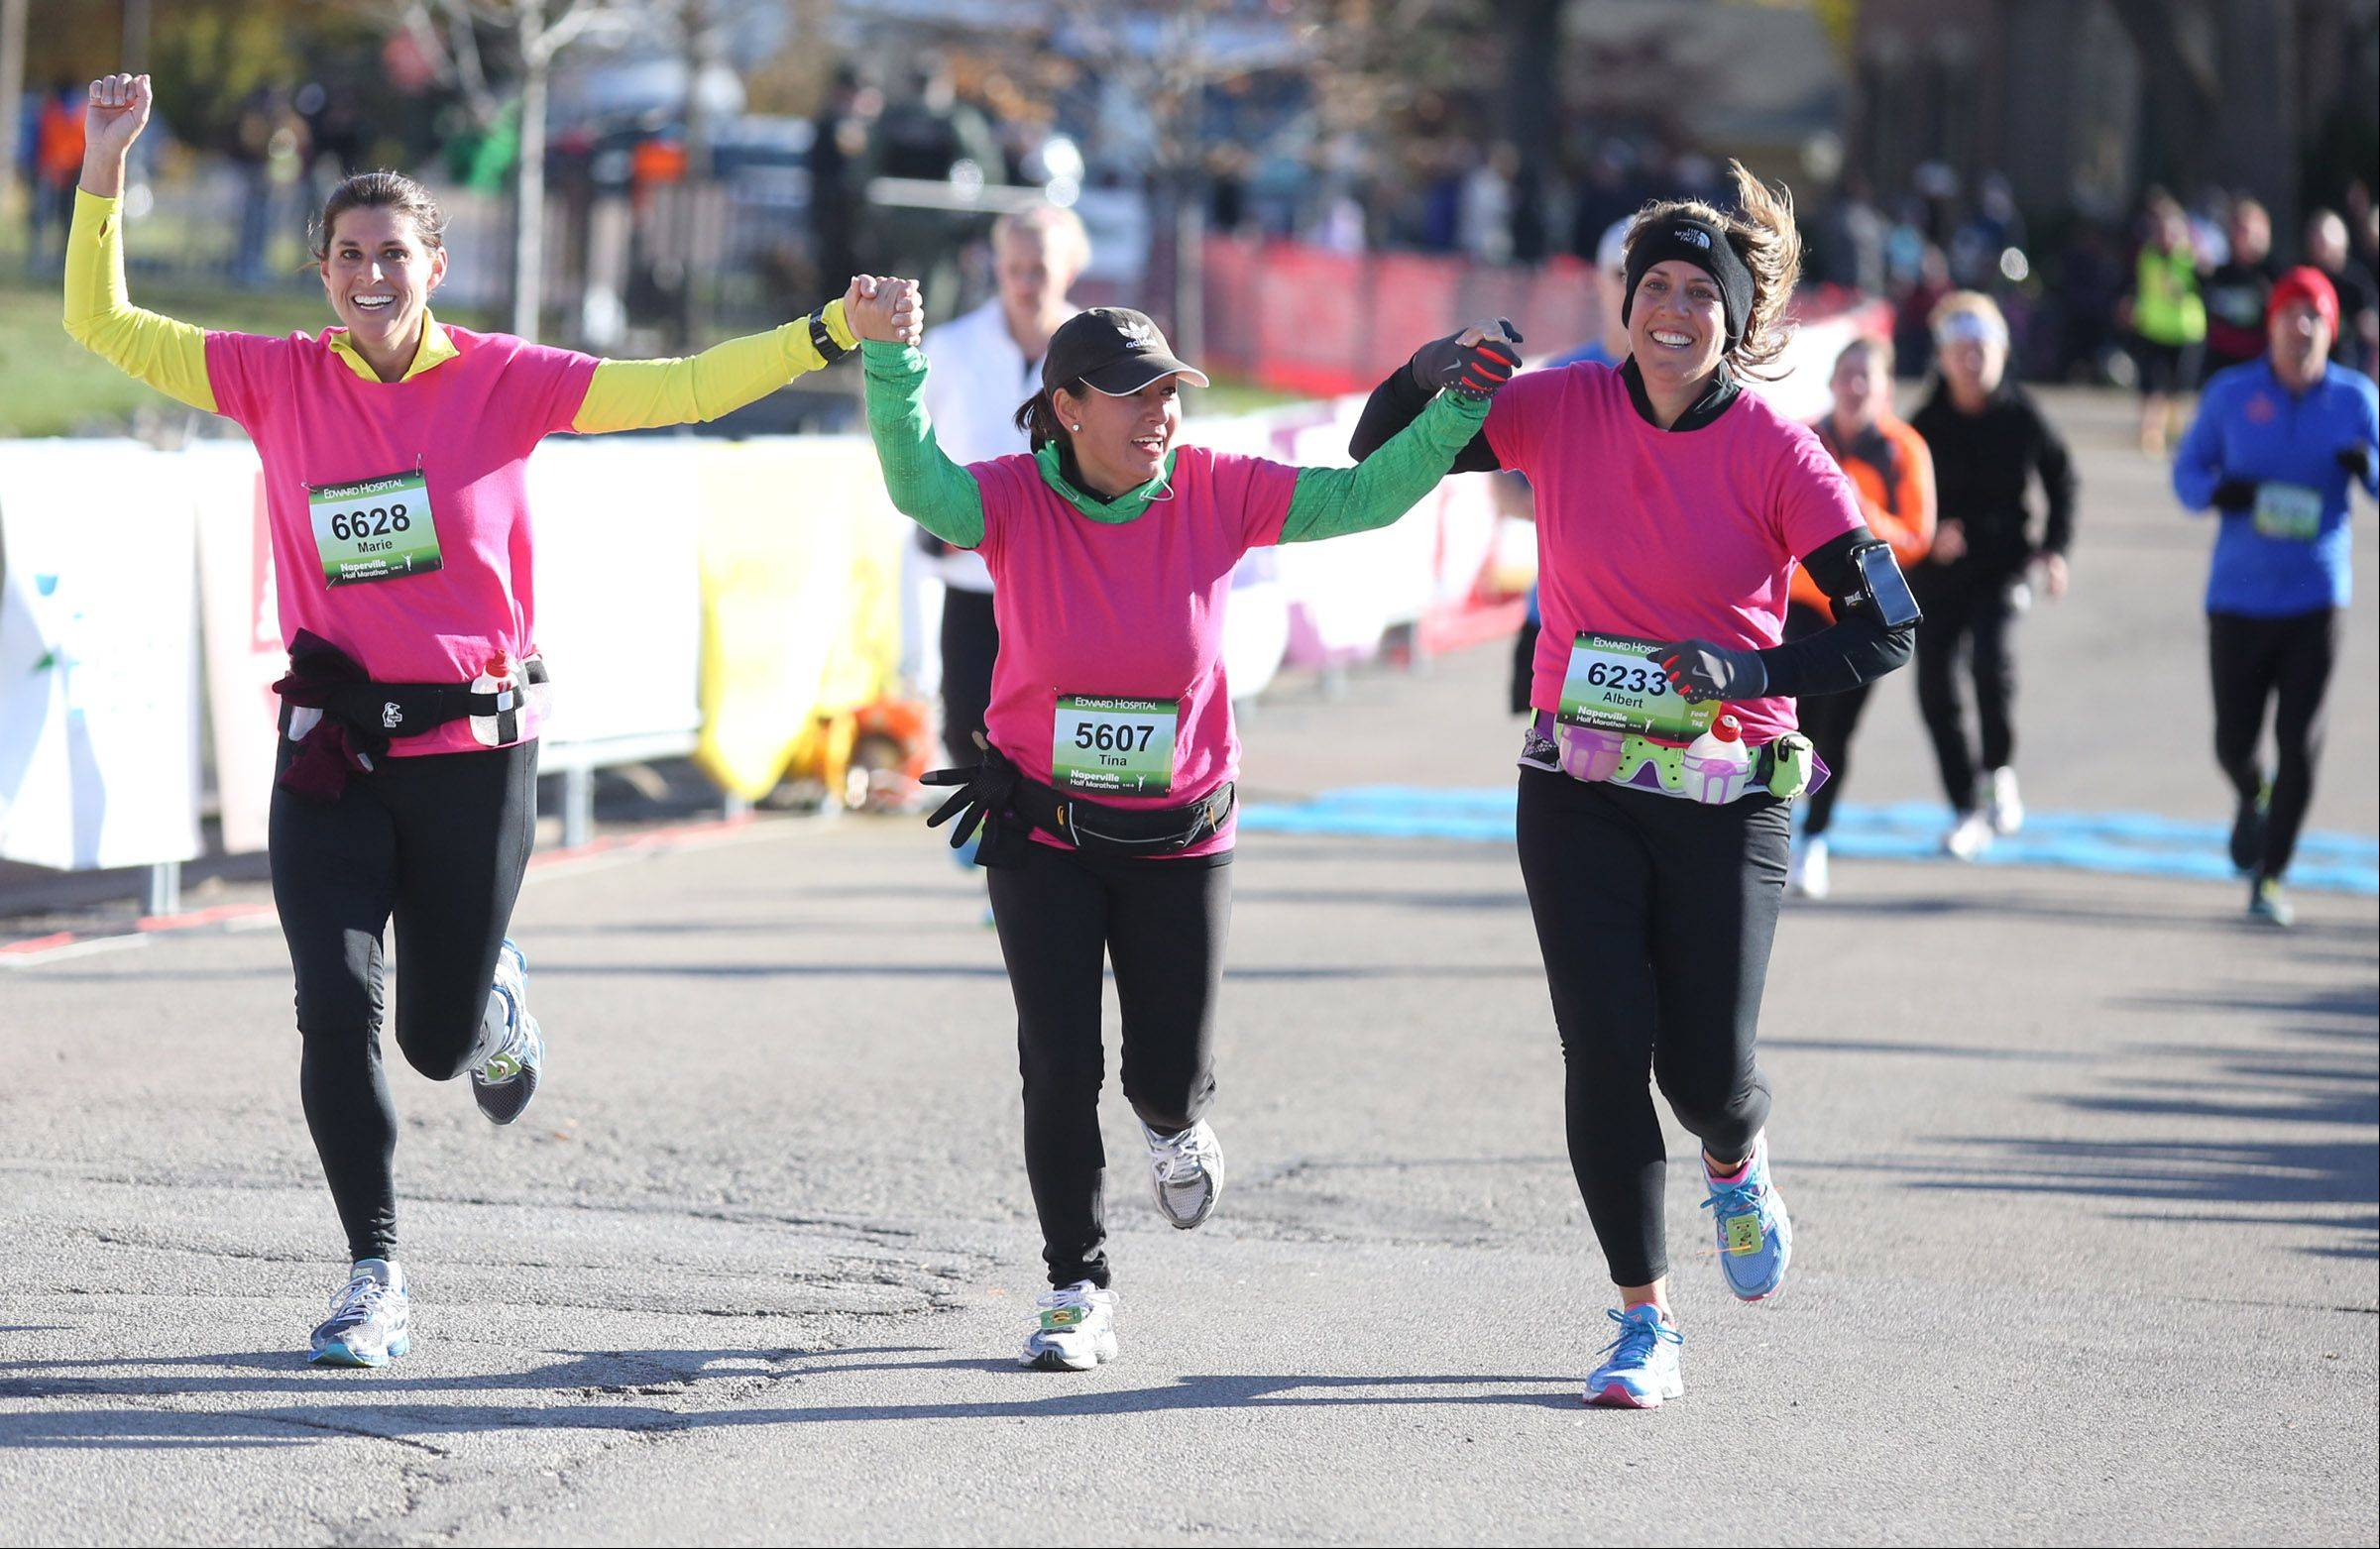 Runners about to cross the finish line in the Edward Hospital Naperville half marathon on Sunday, November 10, 2013.